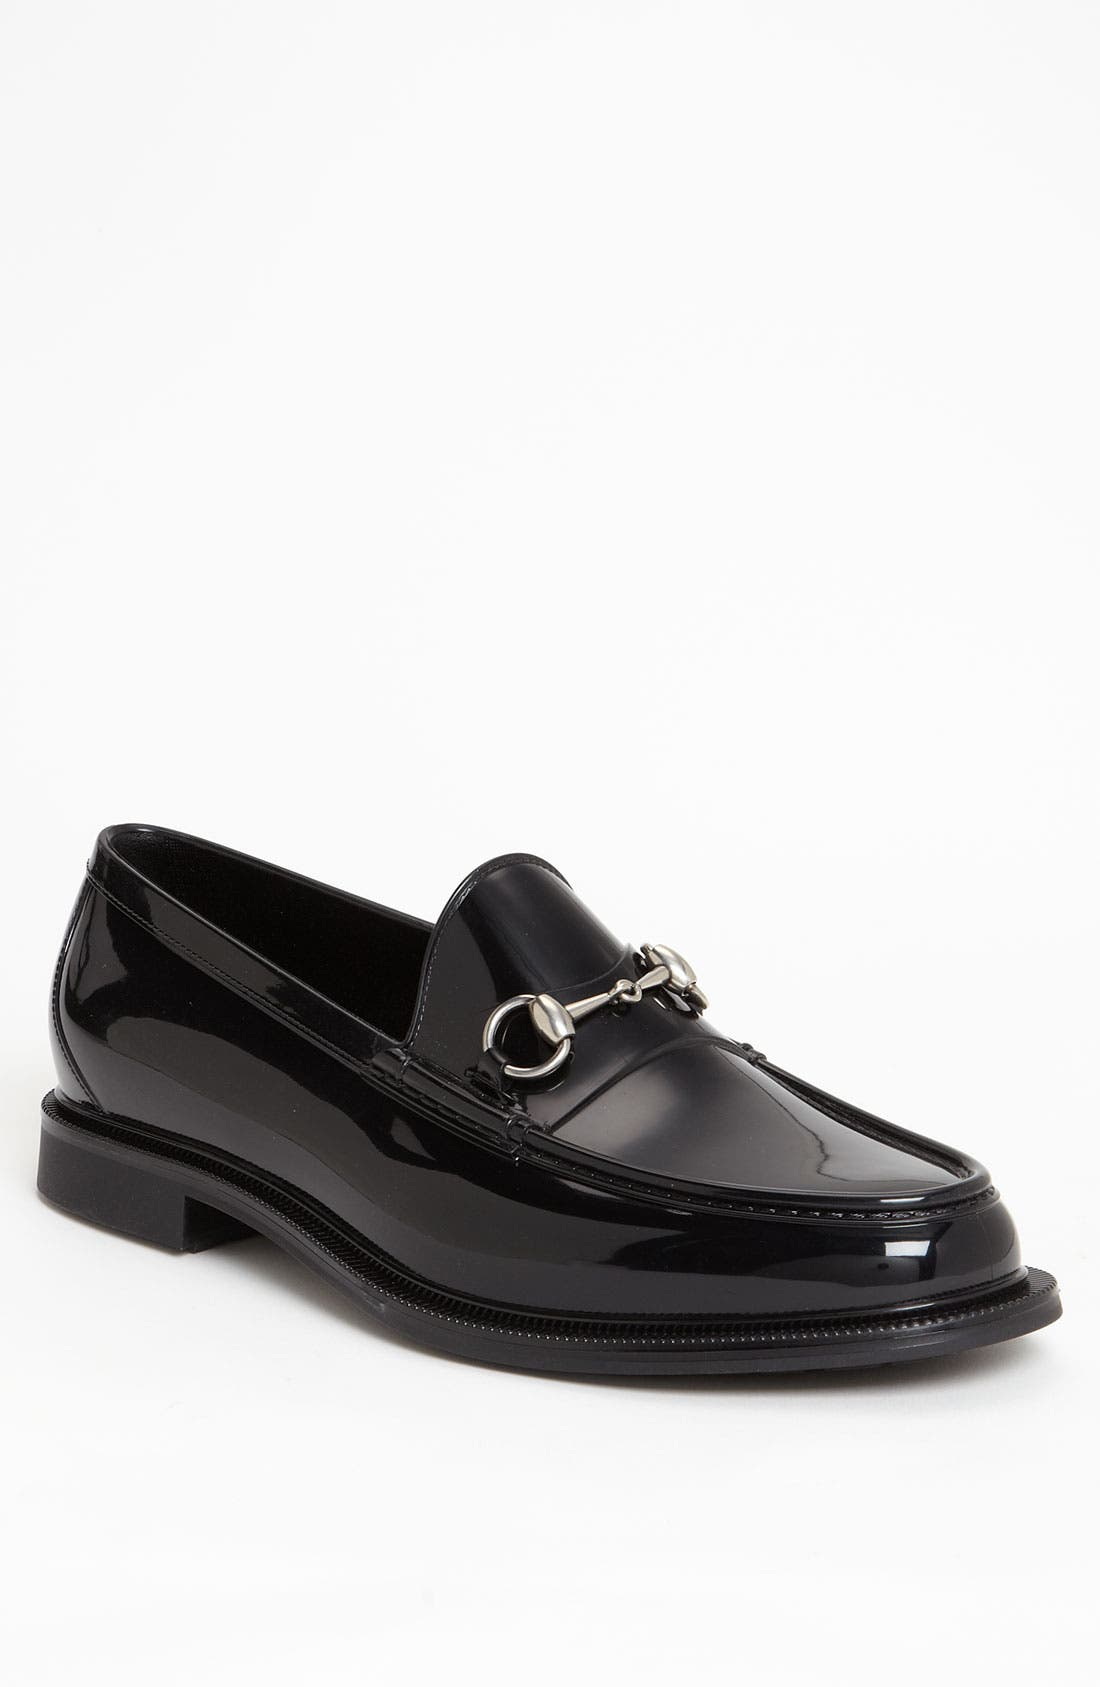 Alternate Image 1 Selected - Gucci 'Dark Rubber' Loafer